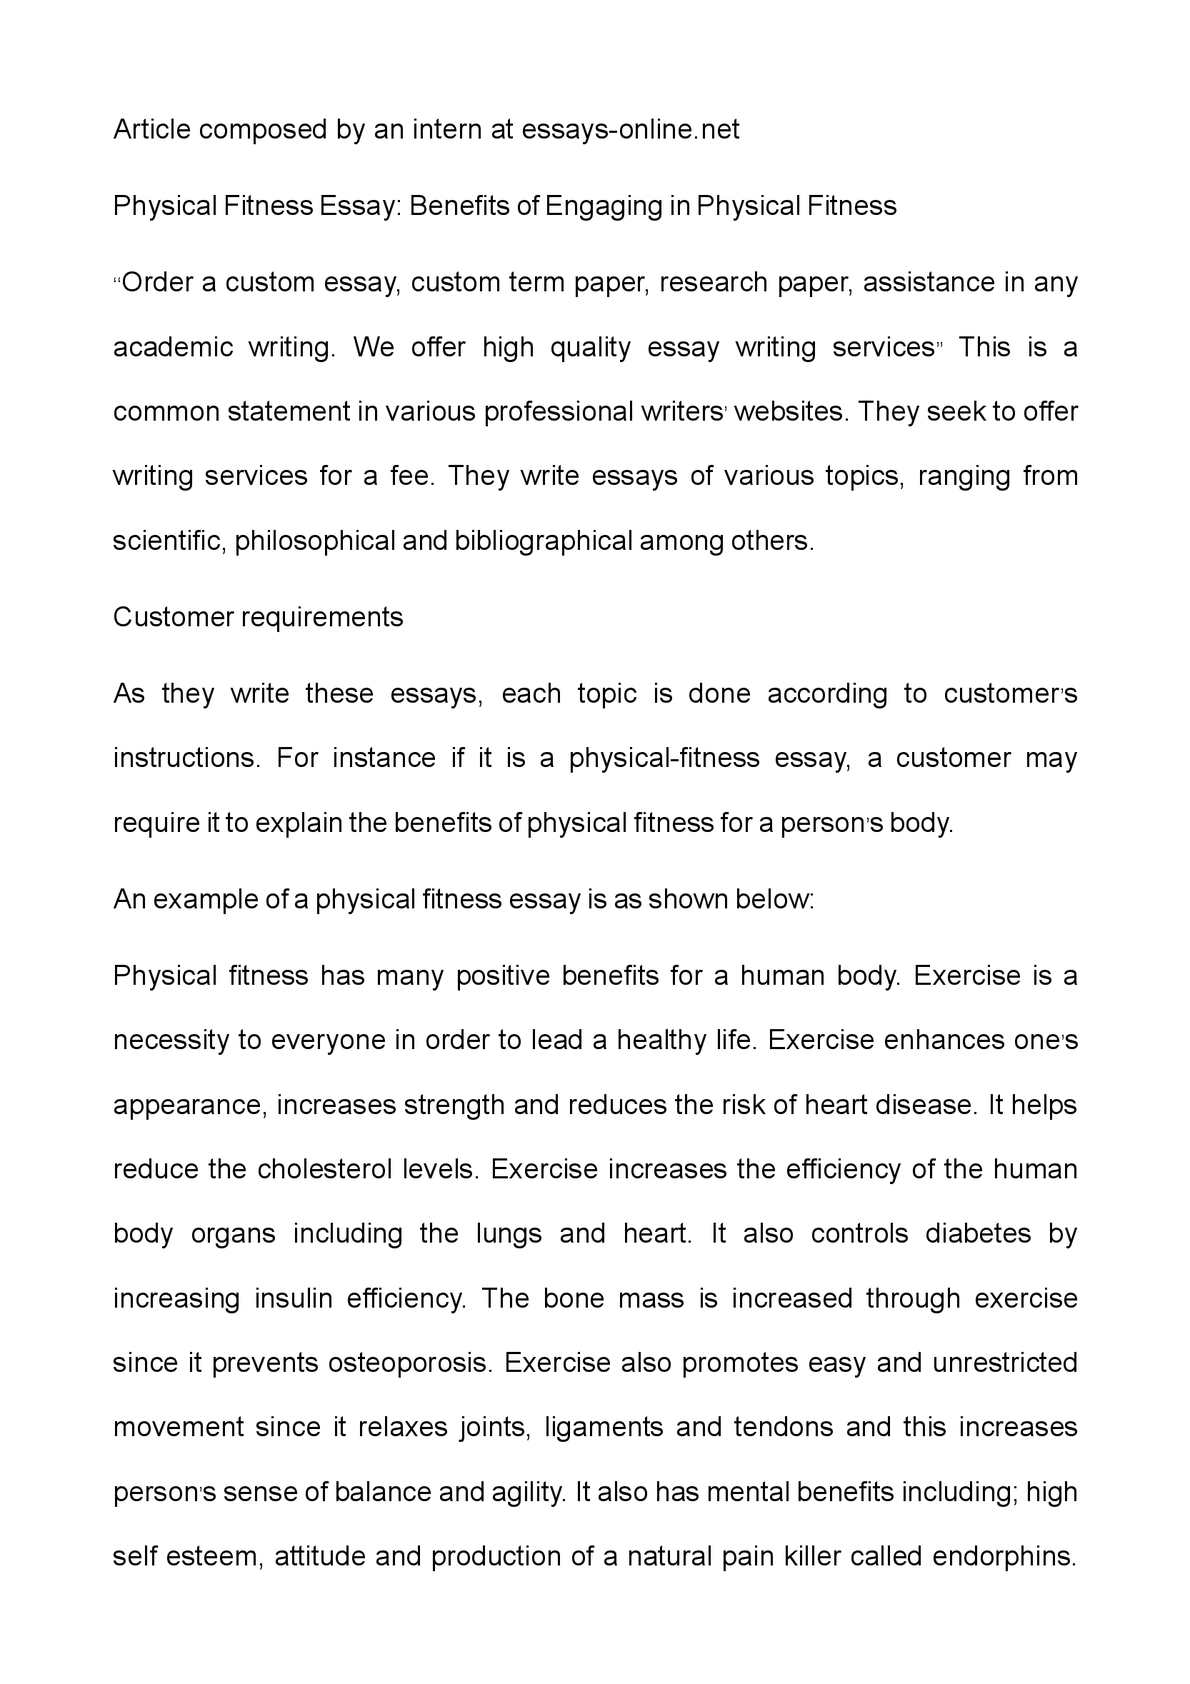 003 Benefits Of Exercise Essay Example Unusual Pdf Short On In Hindi Conclusion Full